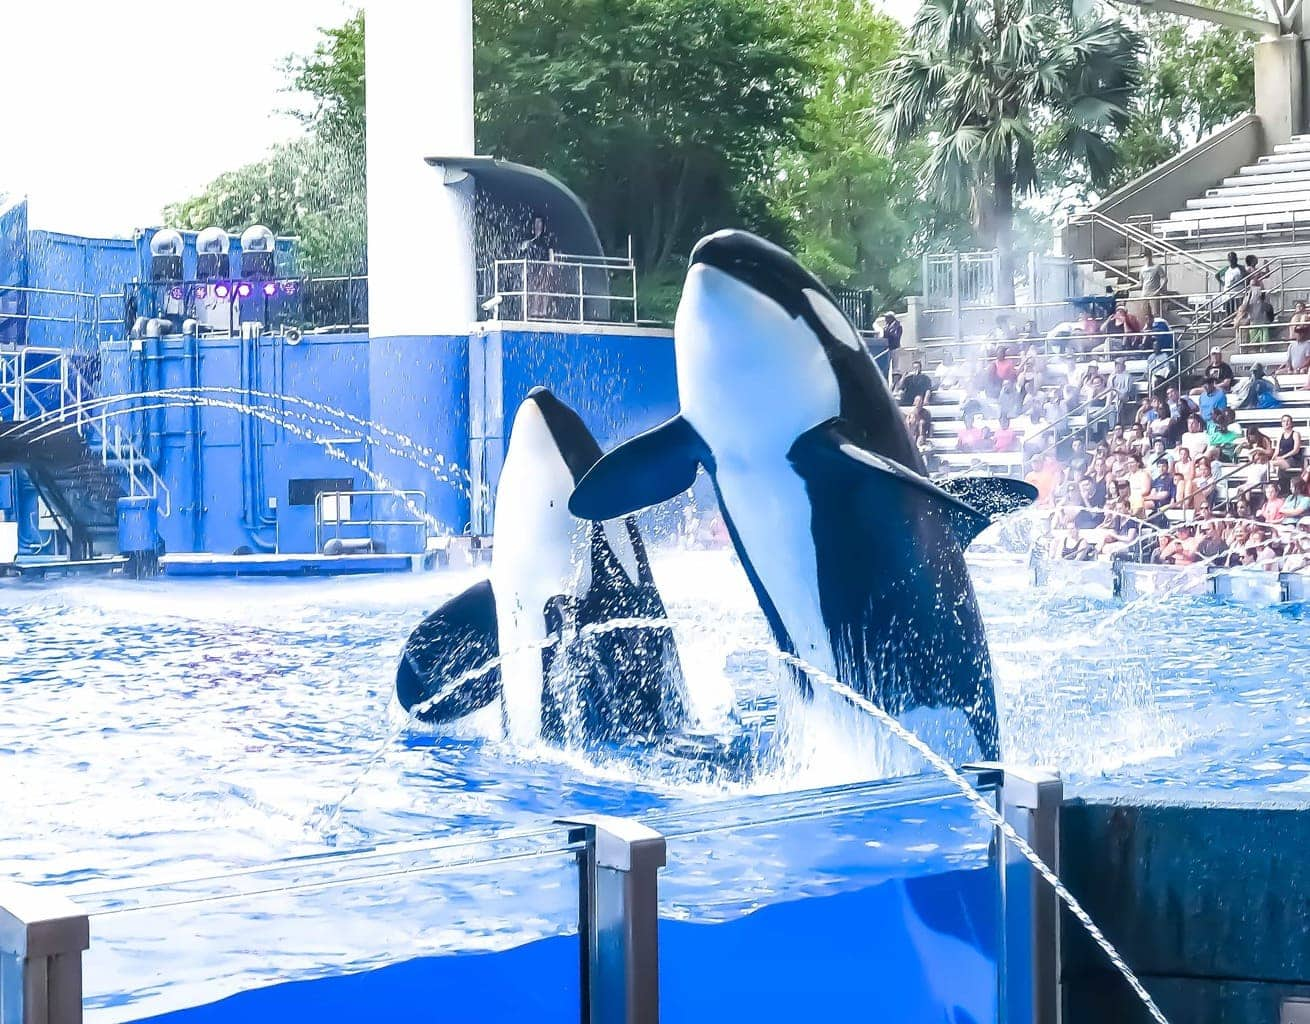 10 Top Expert Tips When Visiting Sea World Orlando With Family